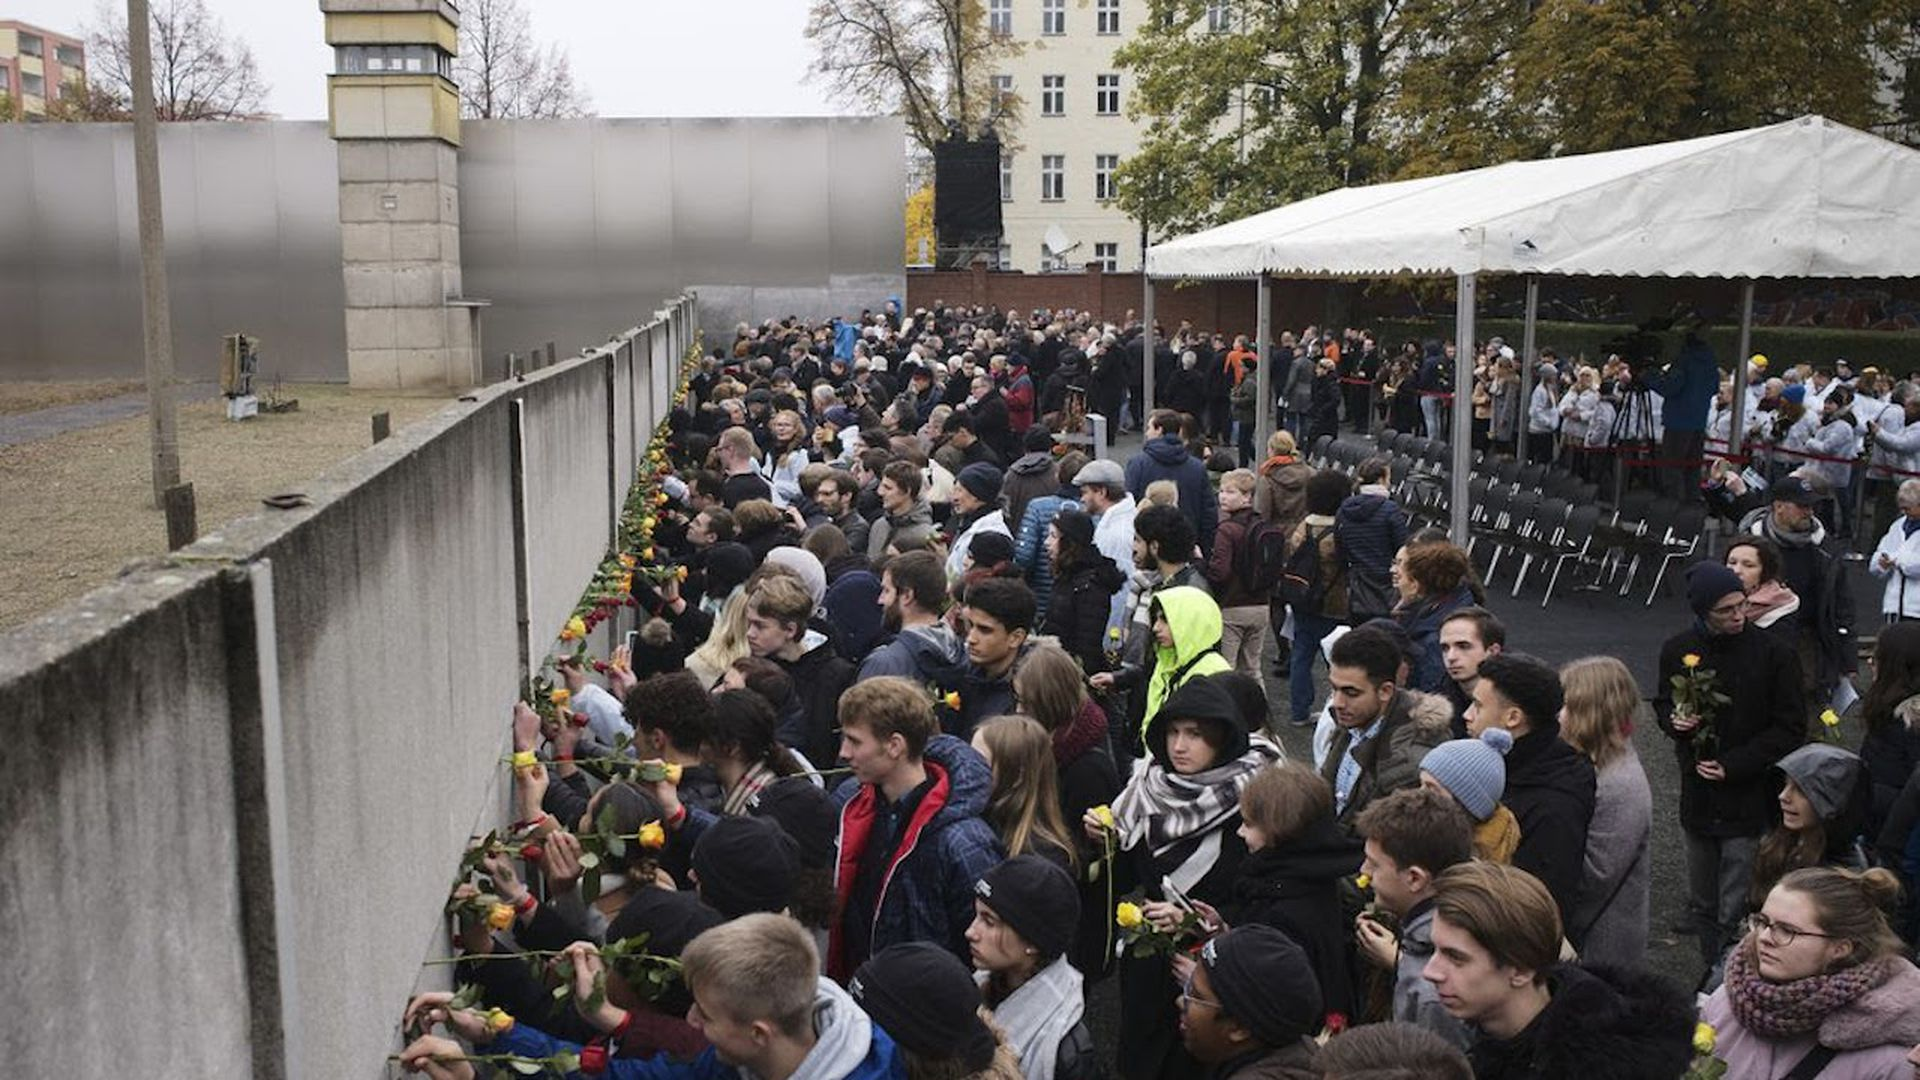 Young people stick flowers in remains of the Berlin Wall during a commemoration ceremony today